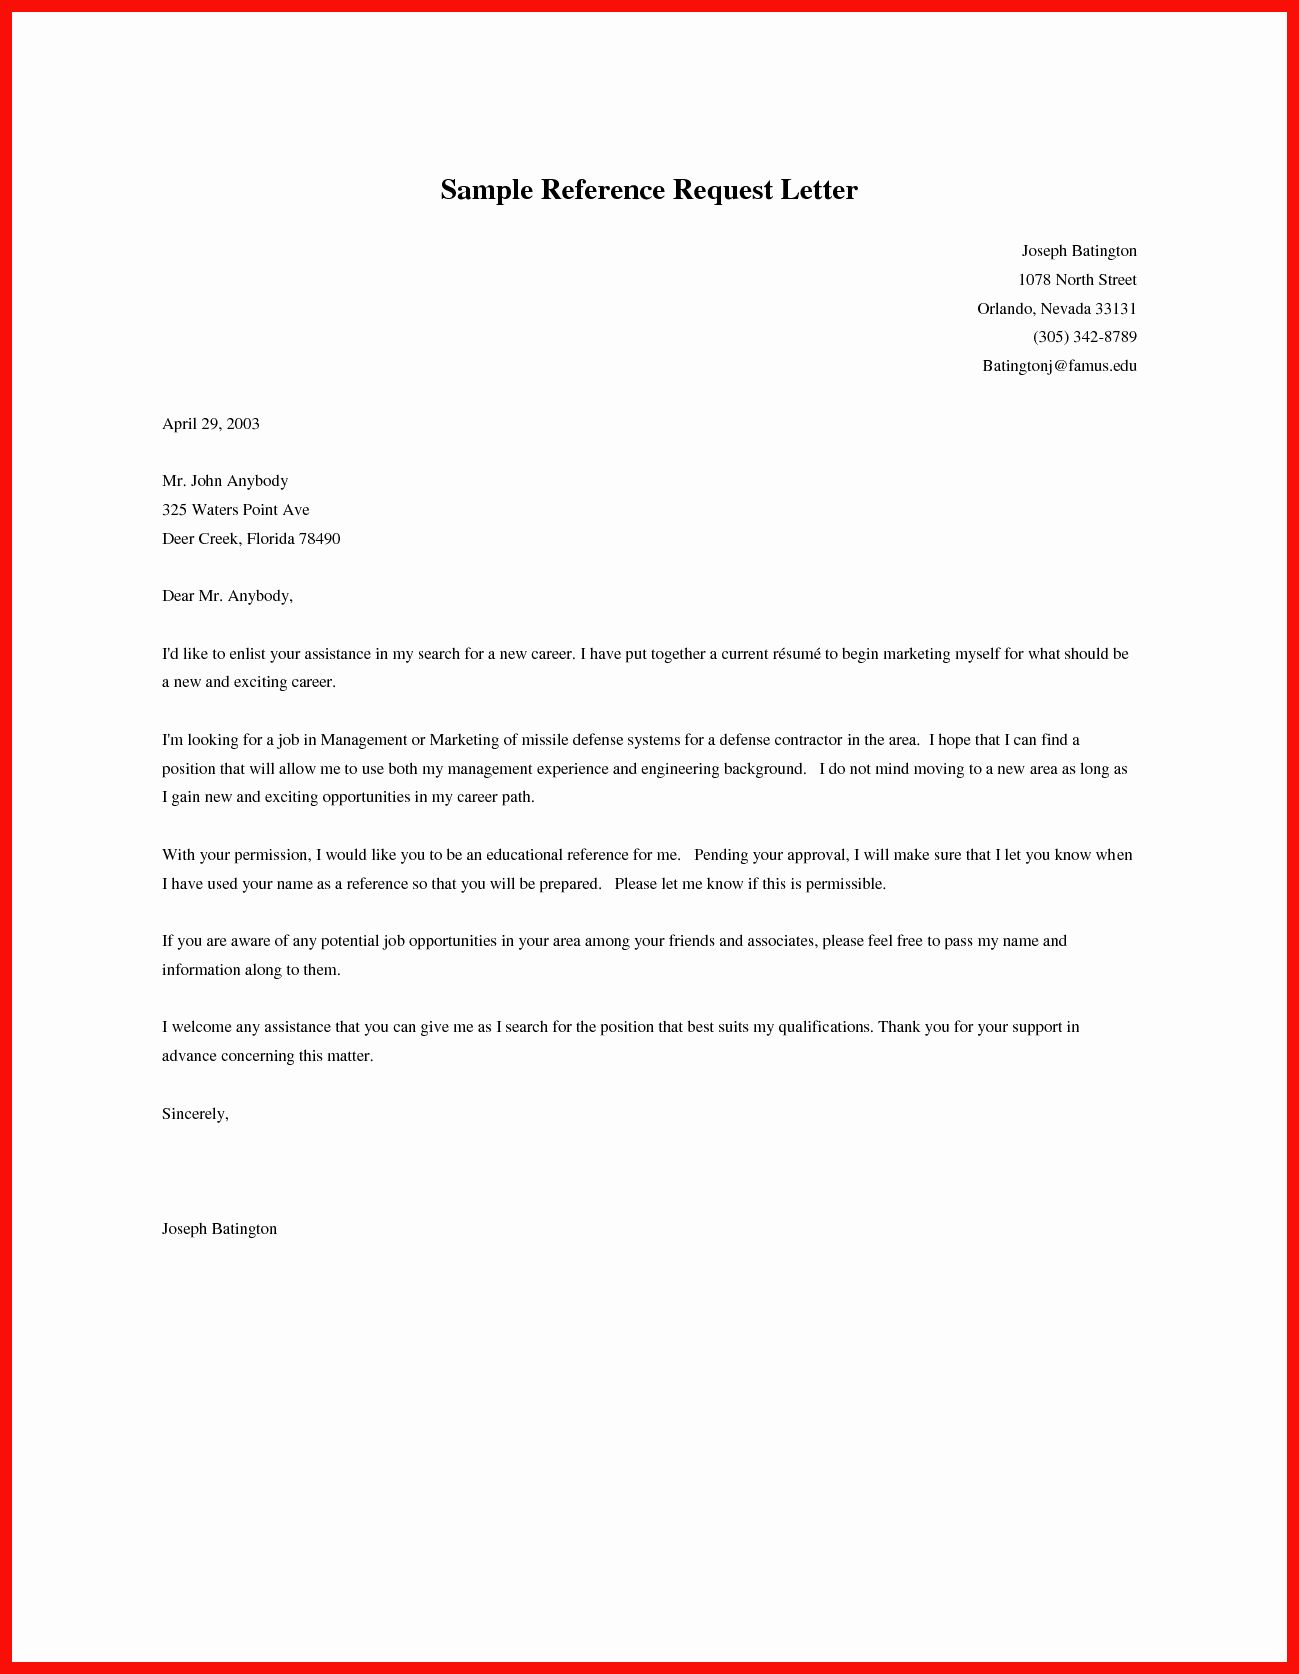 Template For Asking For A Letter Of Recommendation from i.pinimg.com